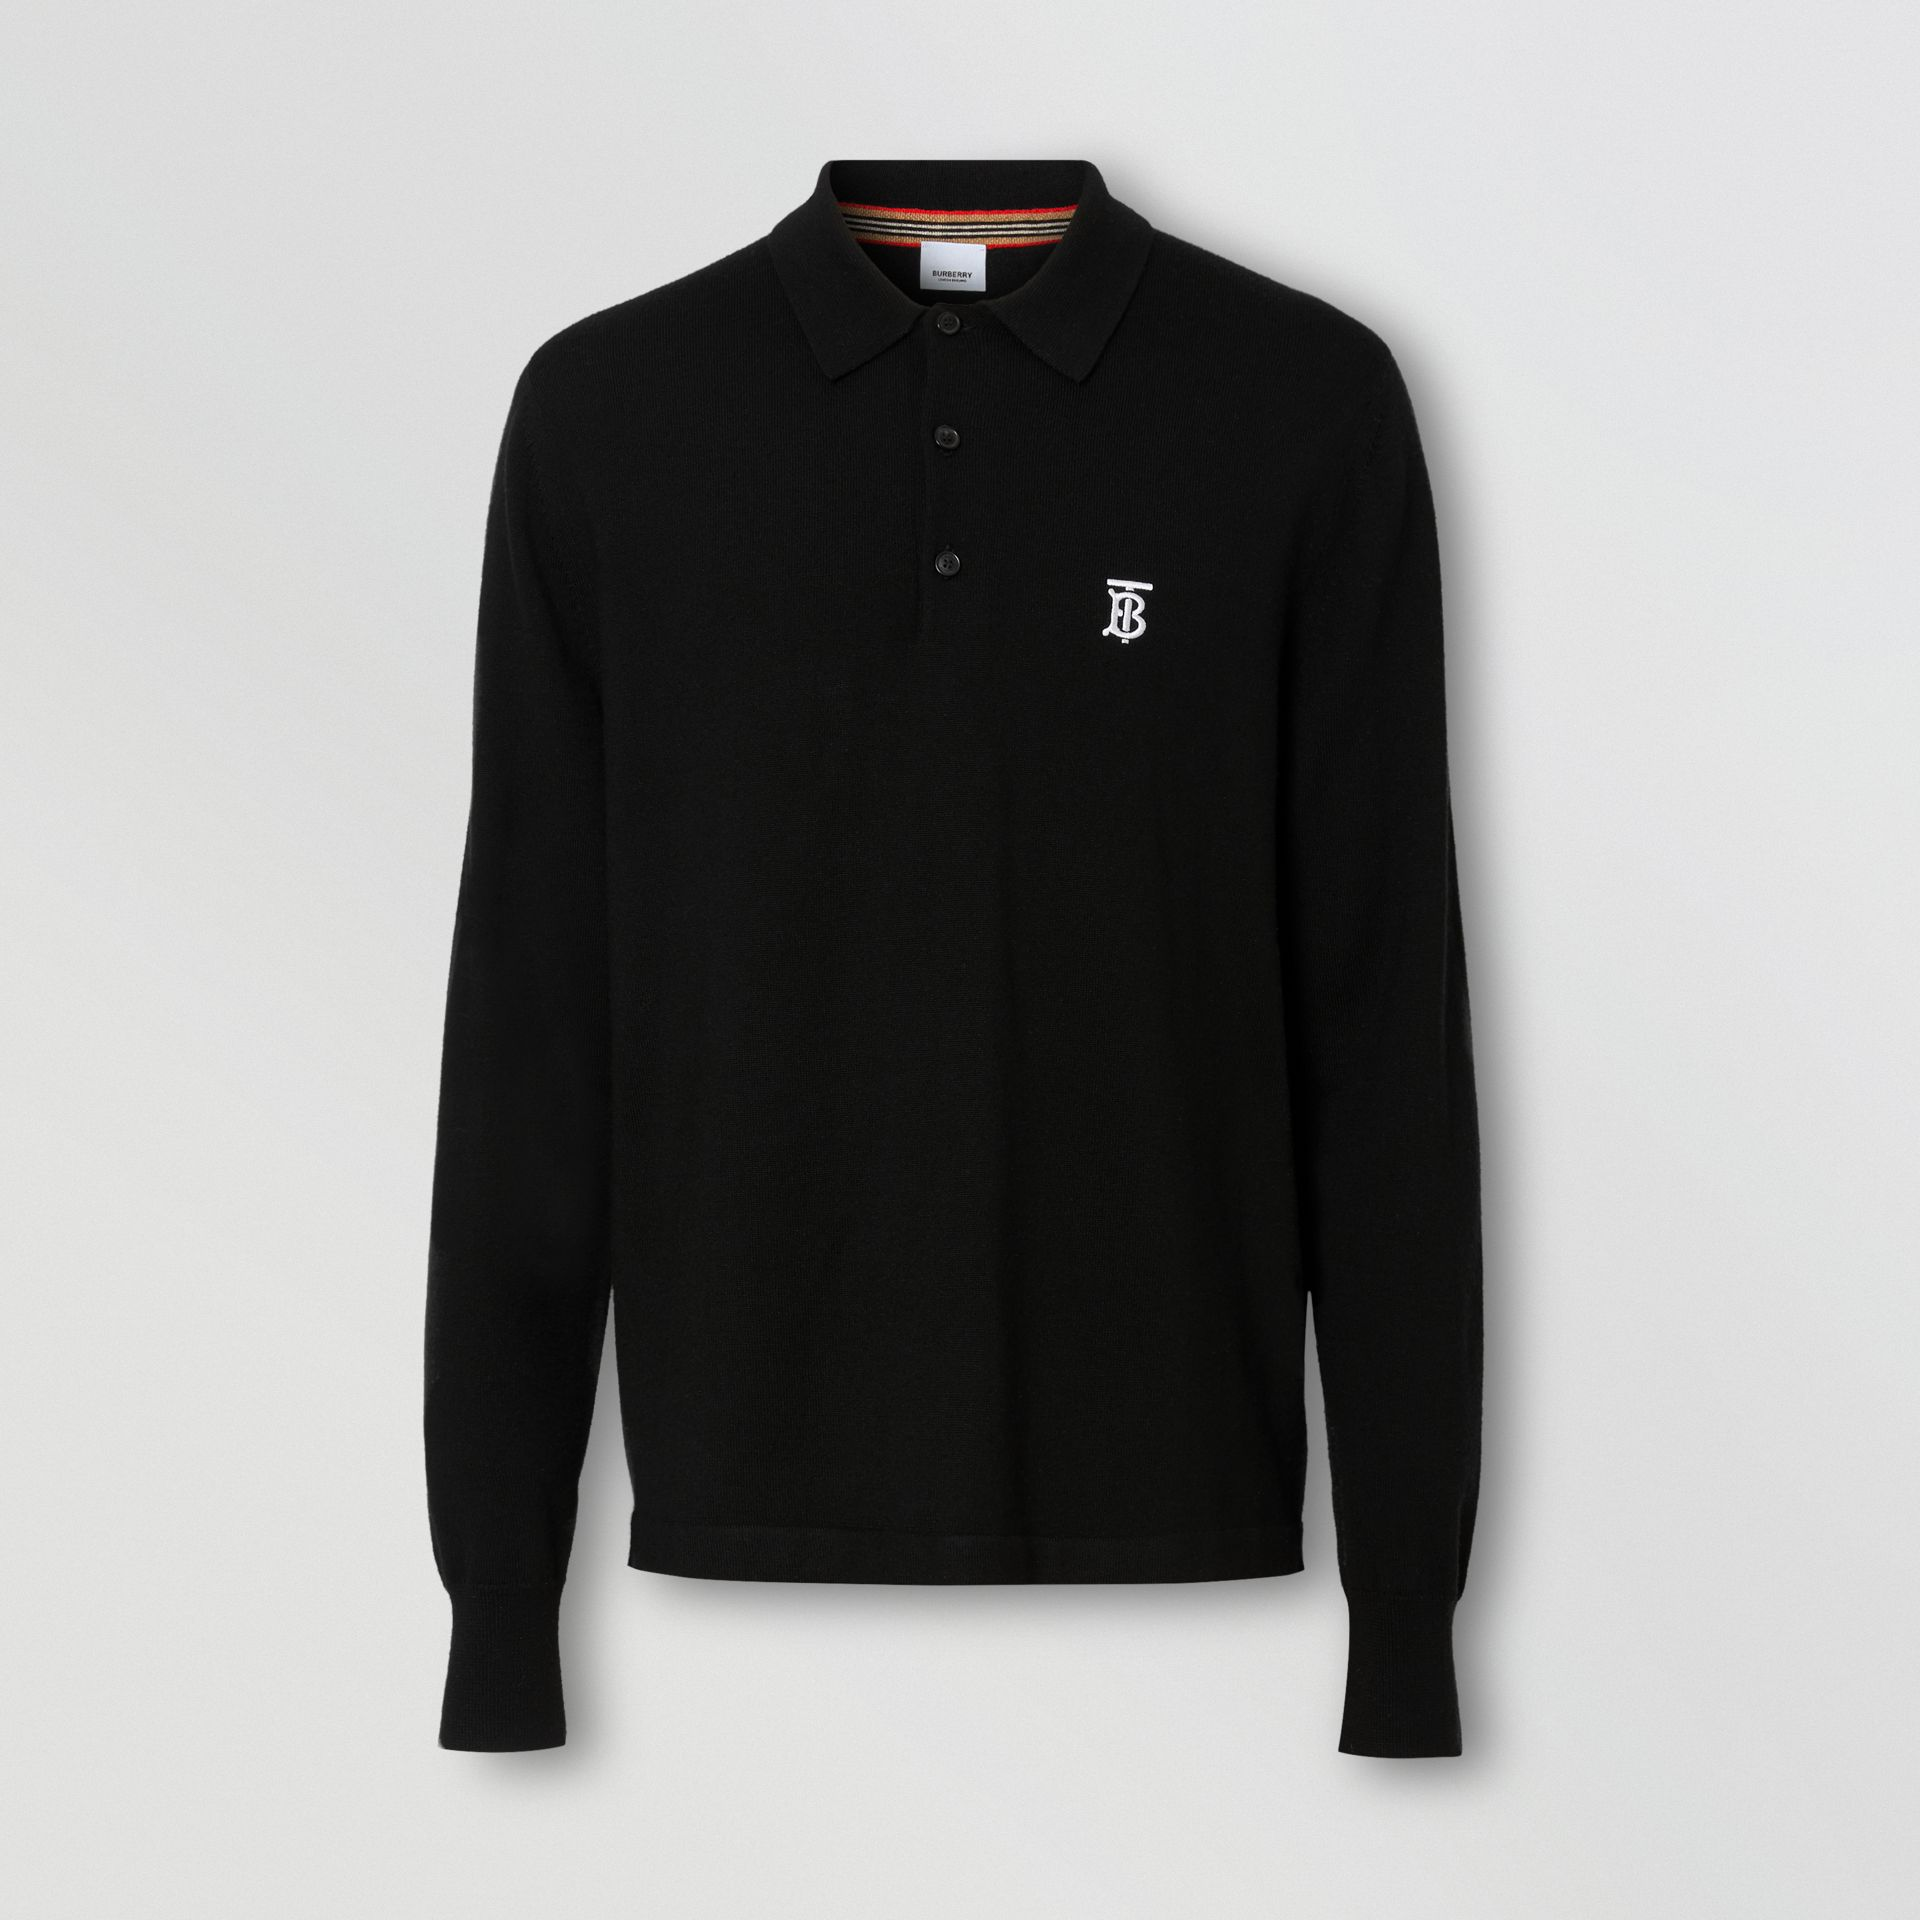 Long-sleeve Monogram Motif Merino Wool Polo Shirt in Black - Men | Burberry - gallery image 3